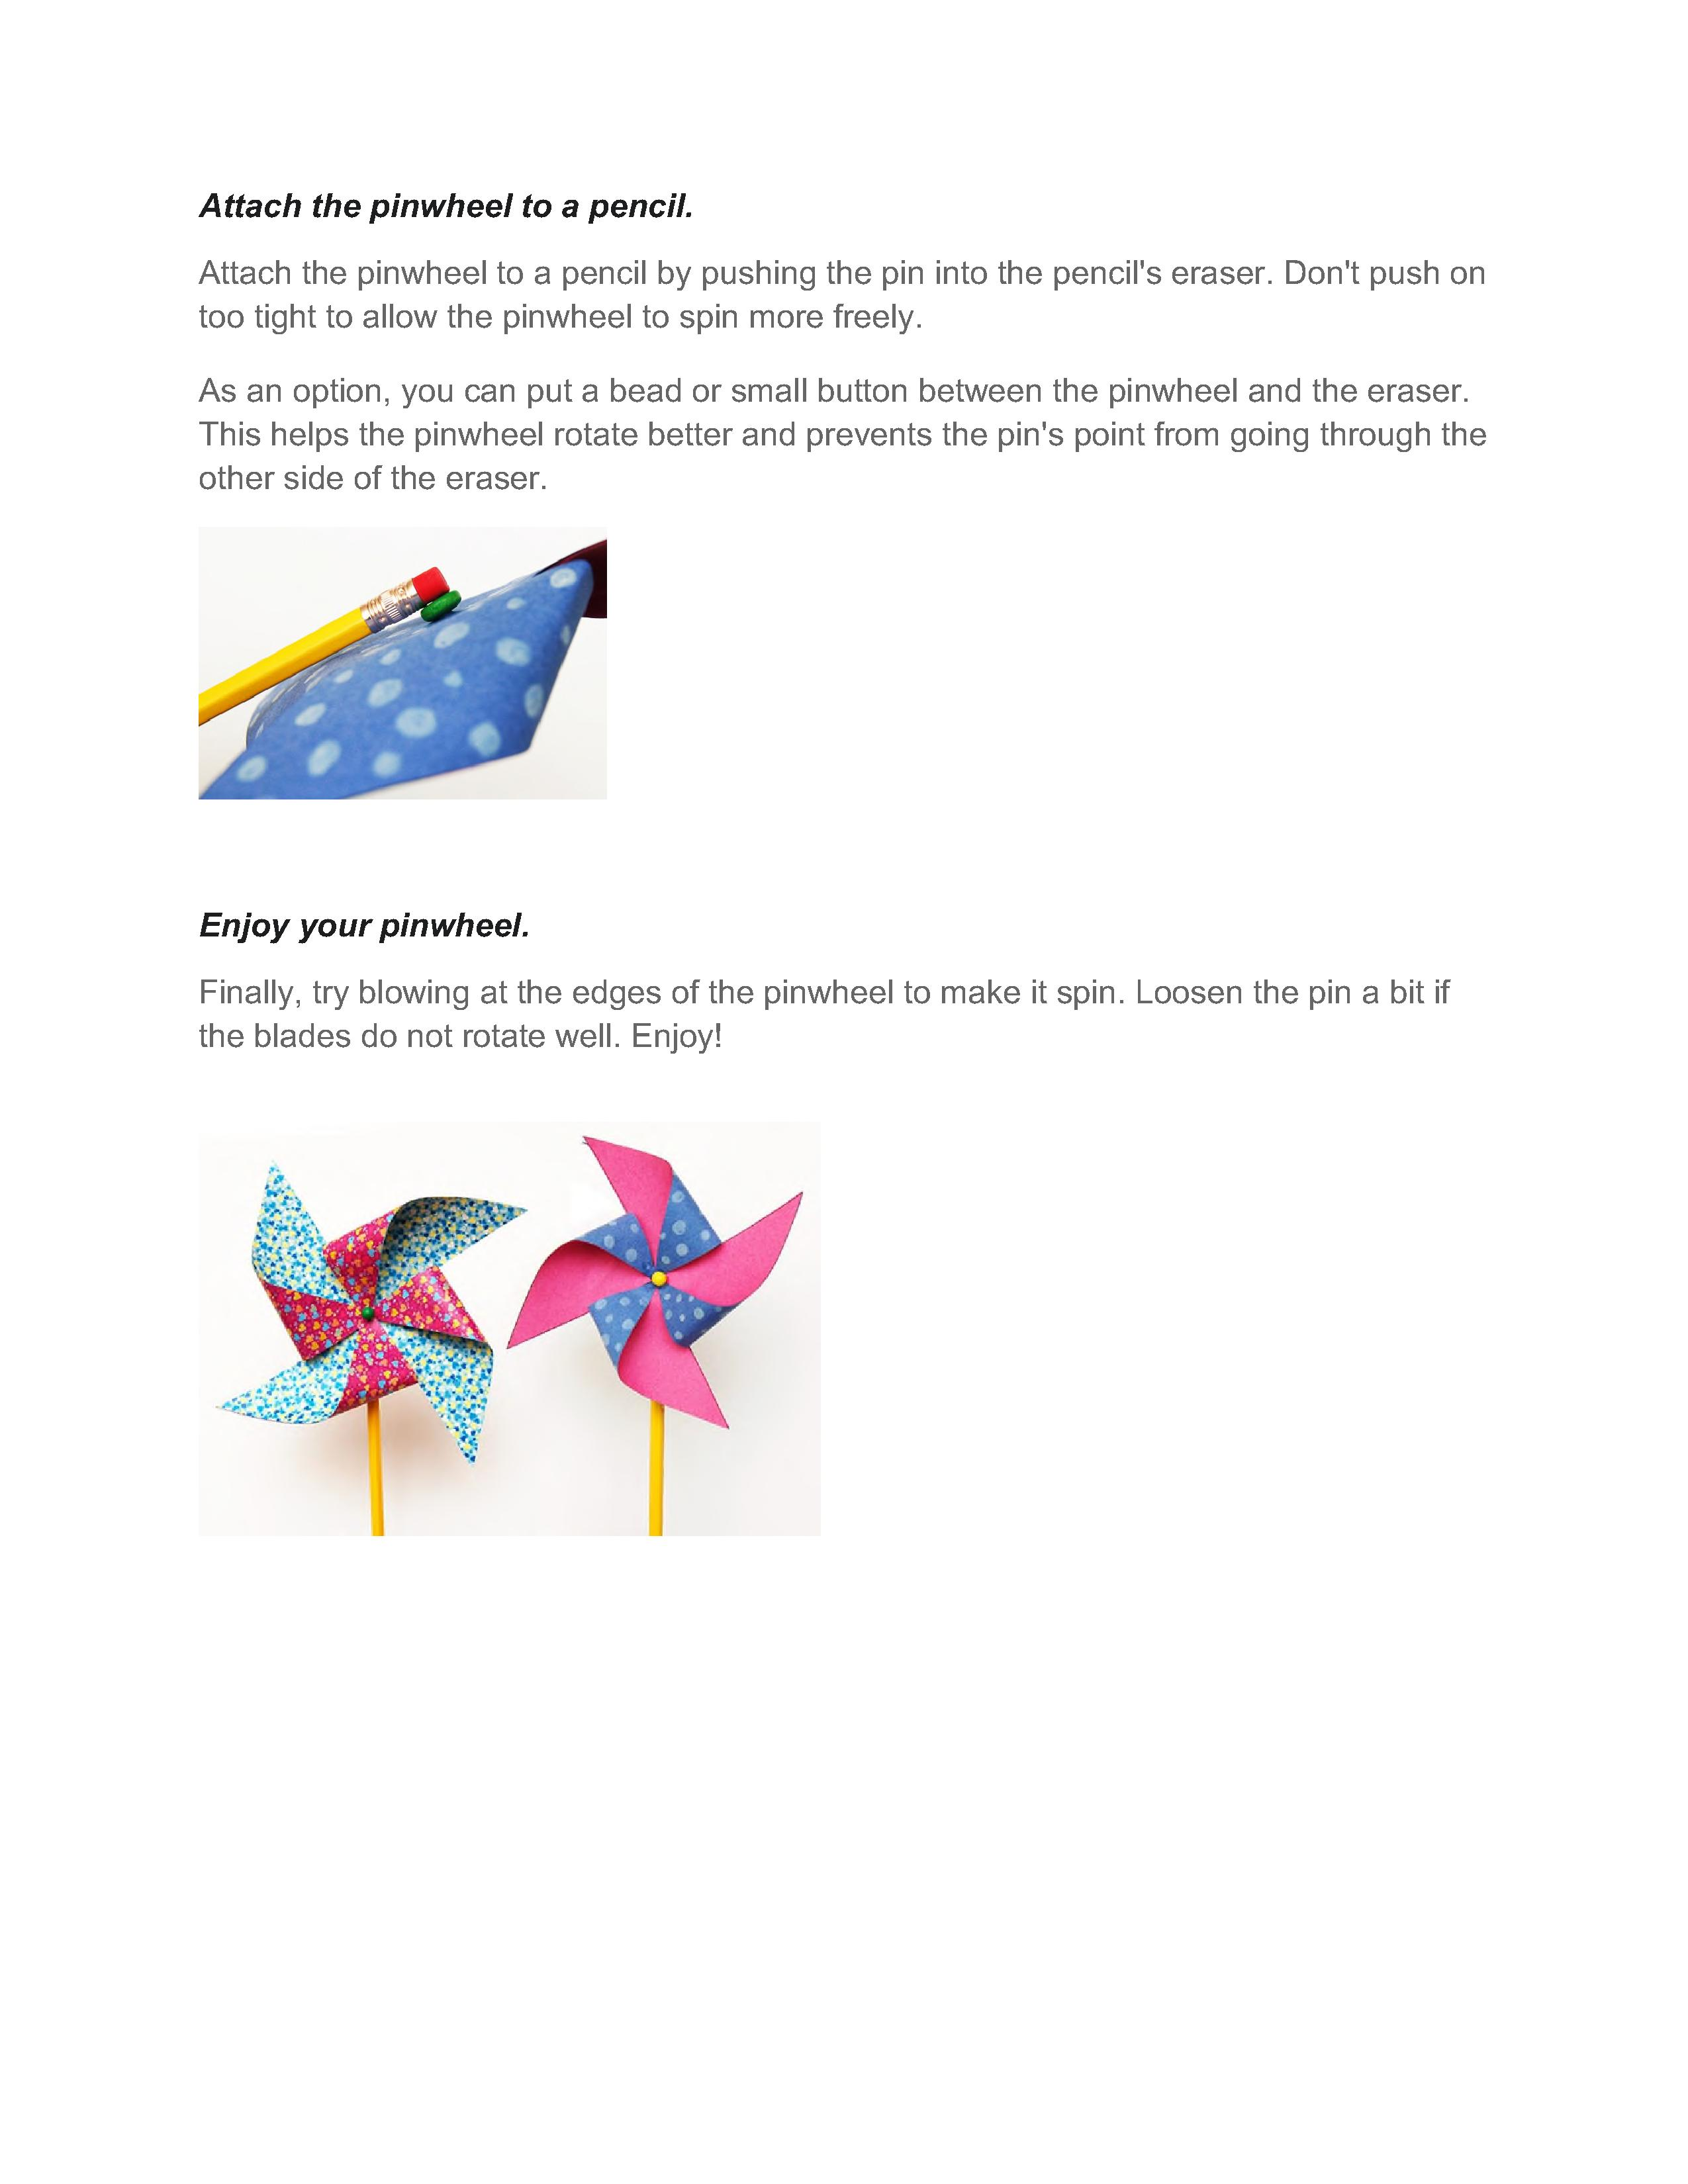 Pinwheel instructions 4